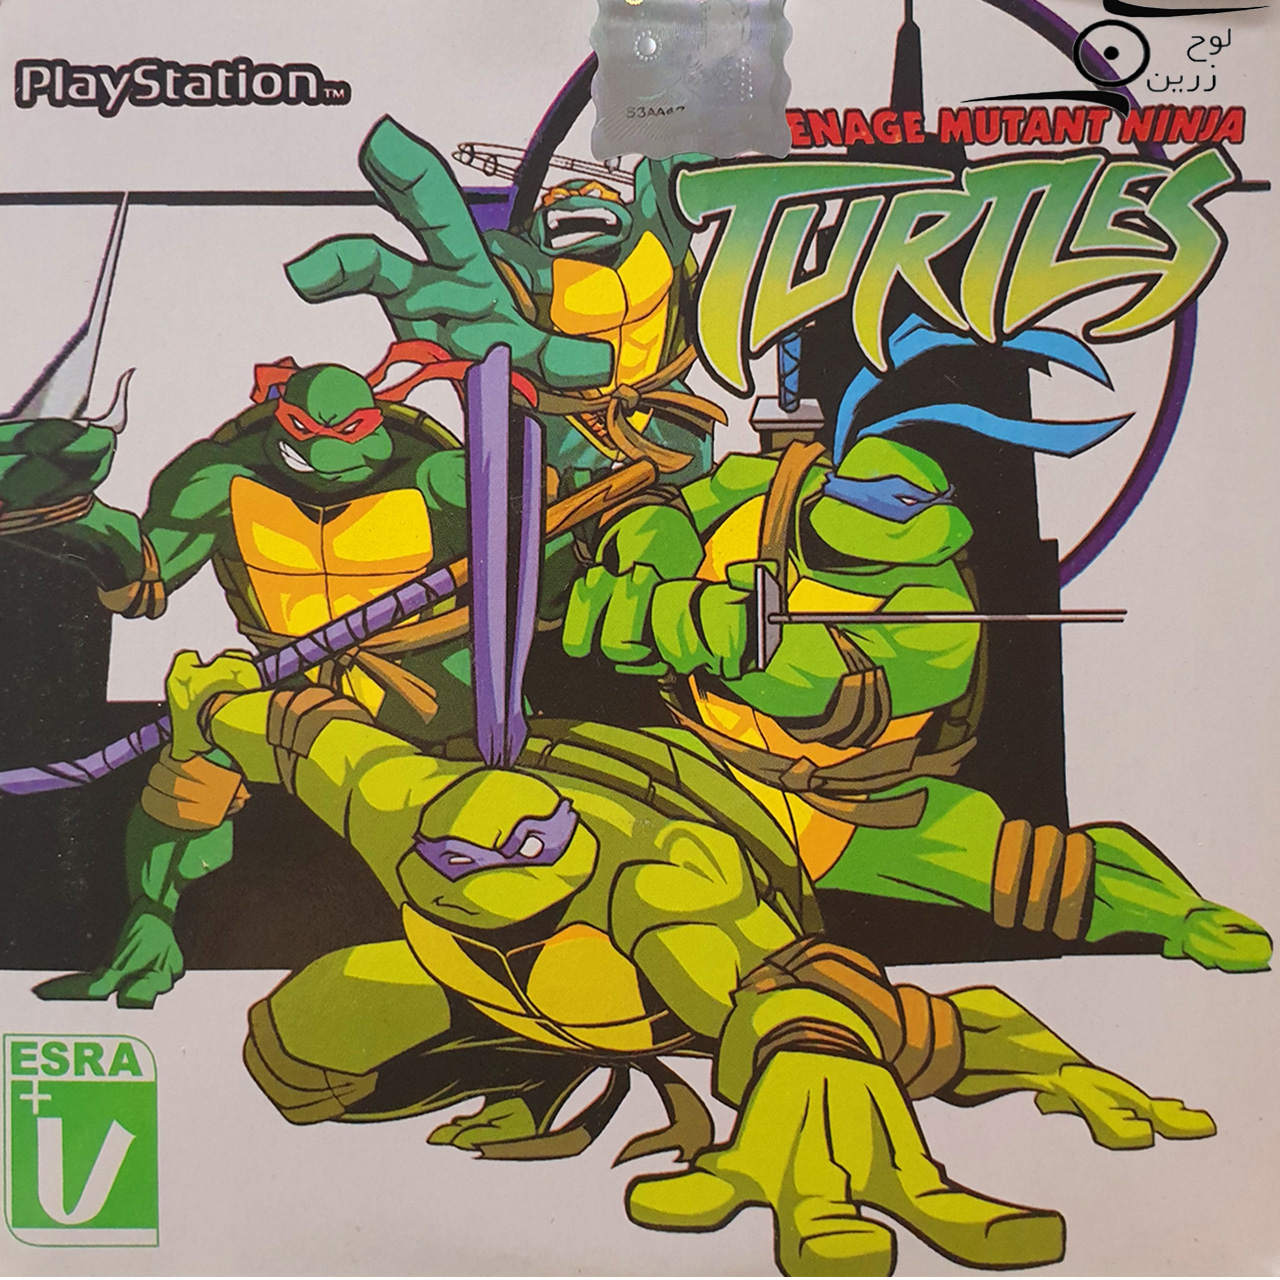 بازی Teenage mutant ninja turtles مخصوص PS1